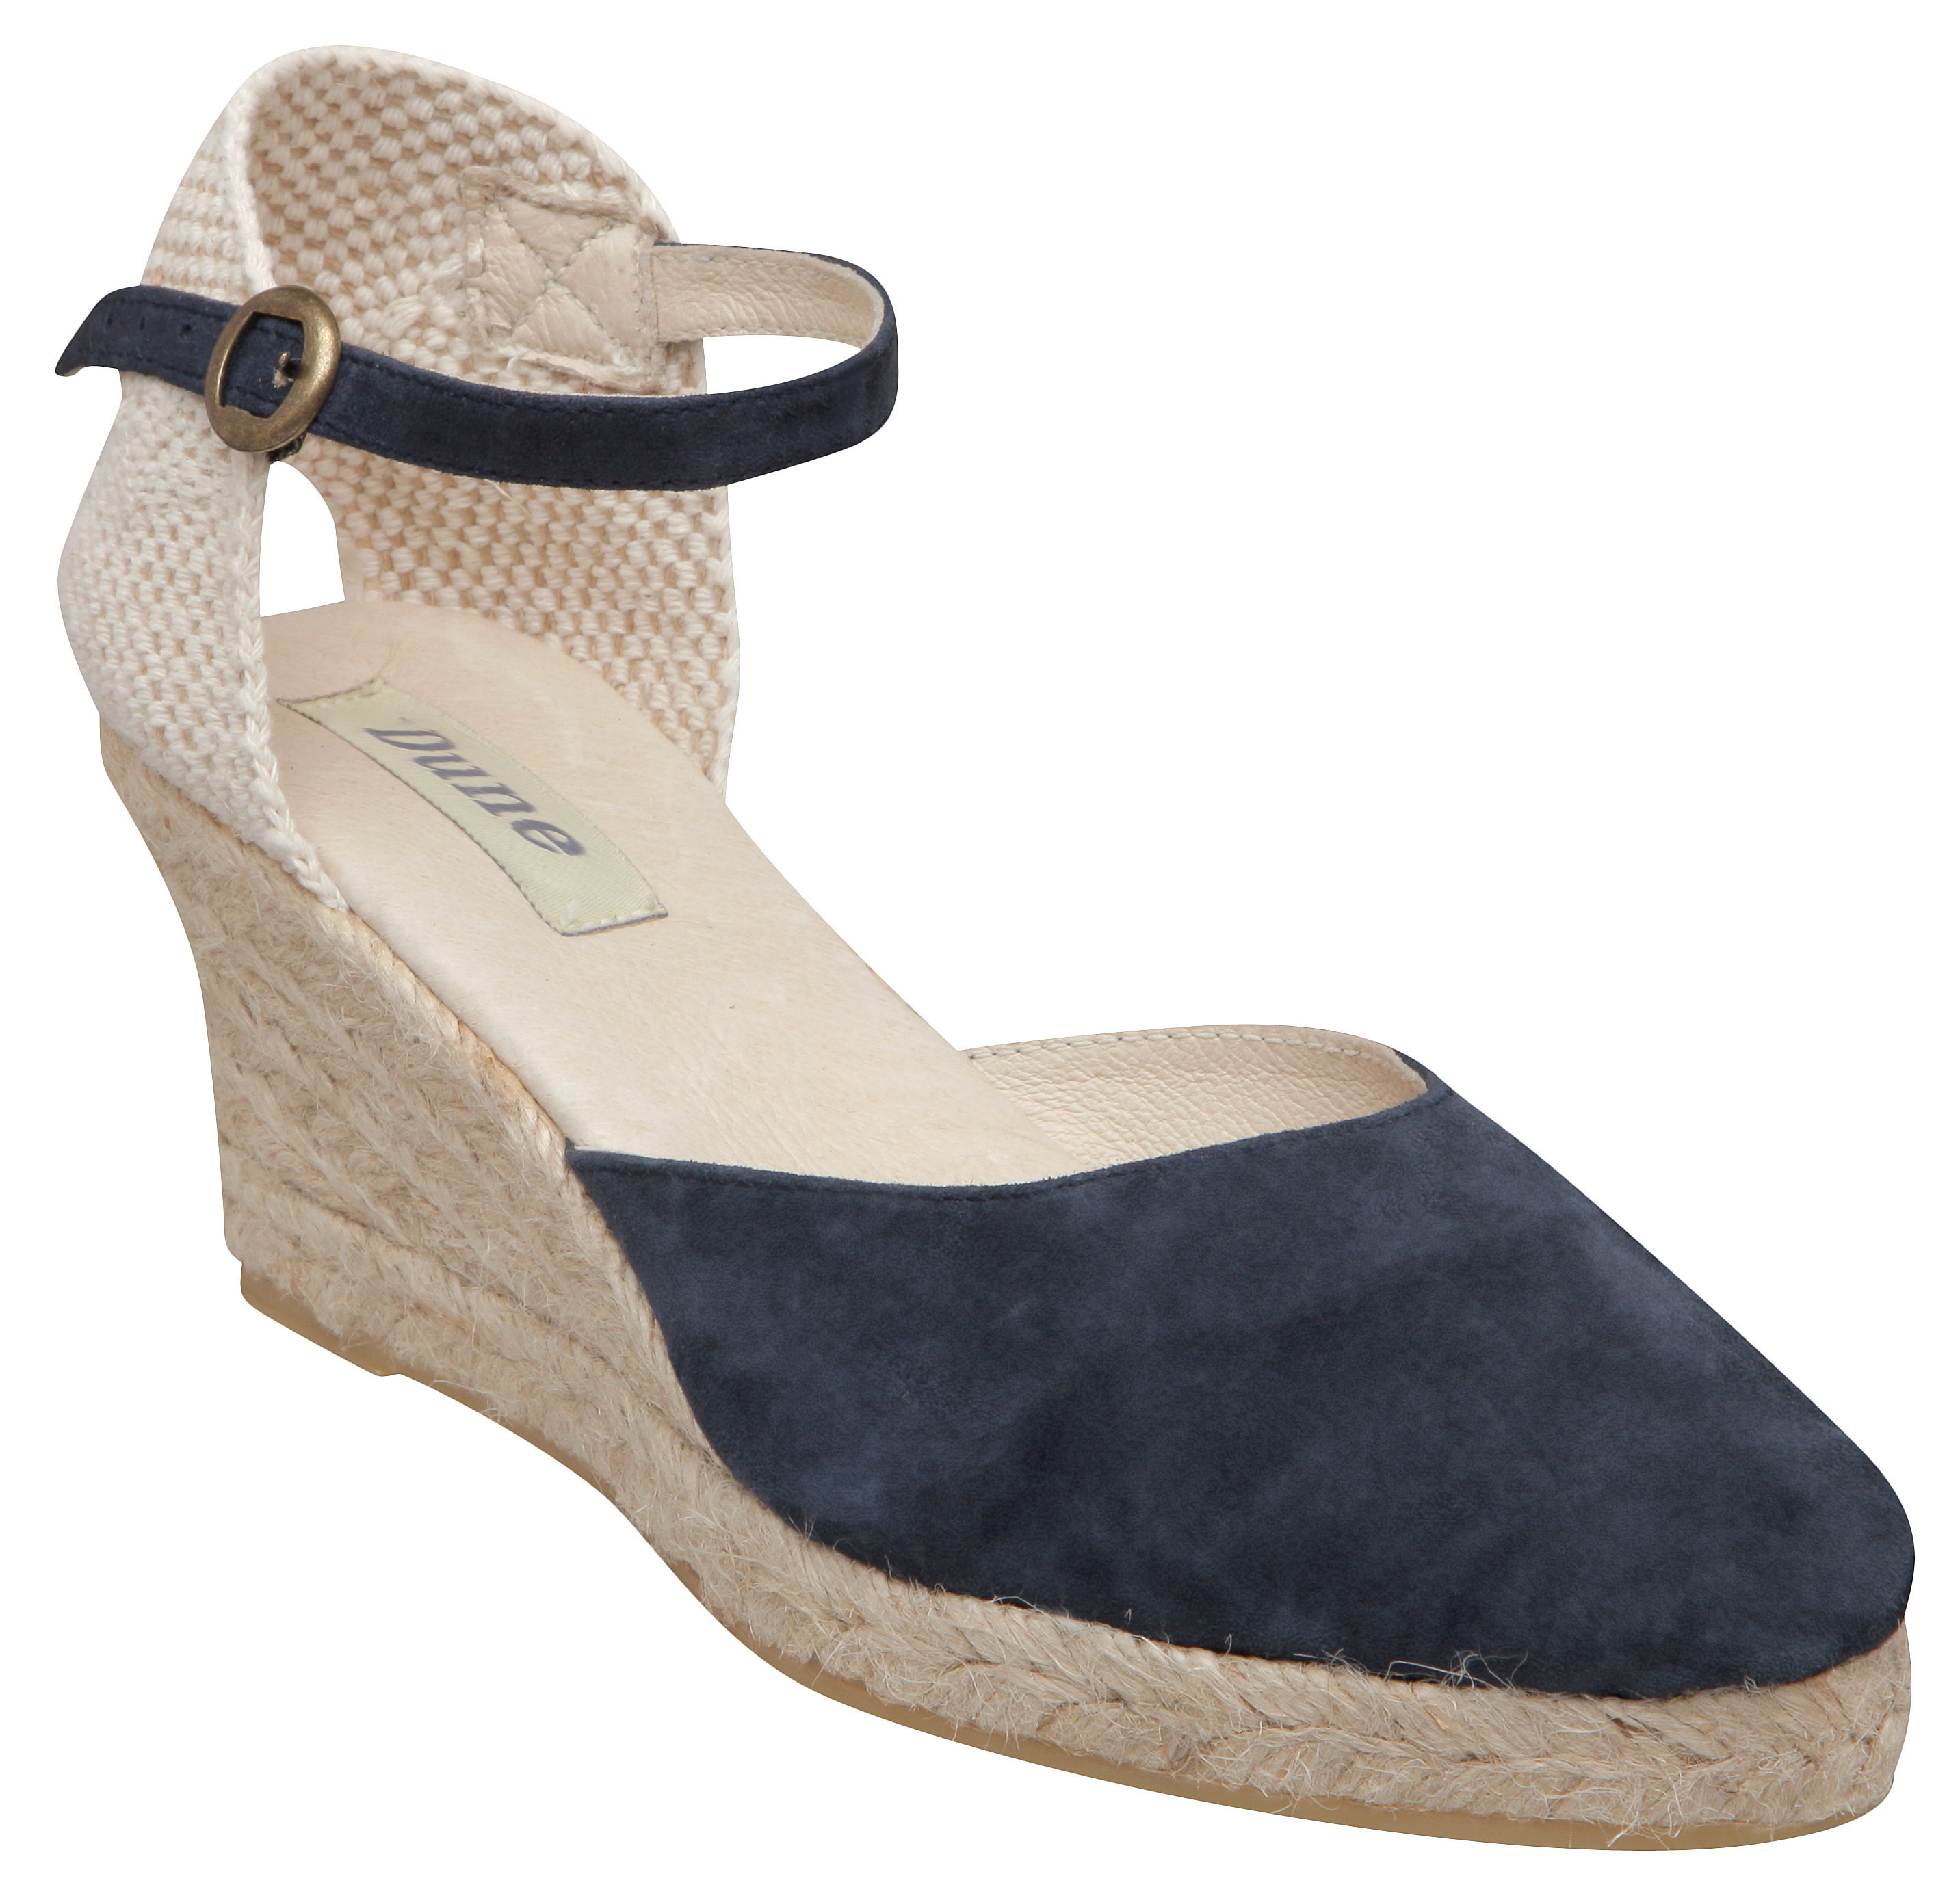 Women's ESPADRILLES The essential vacation (or staycation) style awaits in the form of comfortable slip-ons or elevated platform espadrilles. Shop dressy wedges.